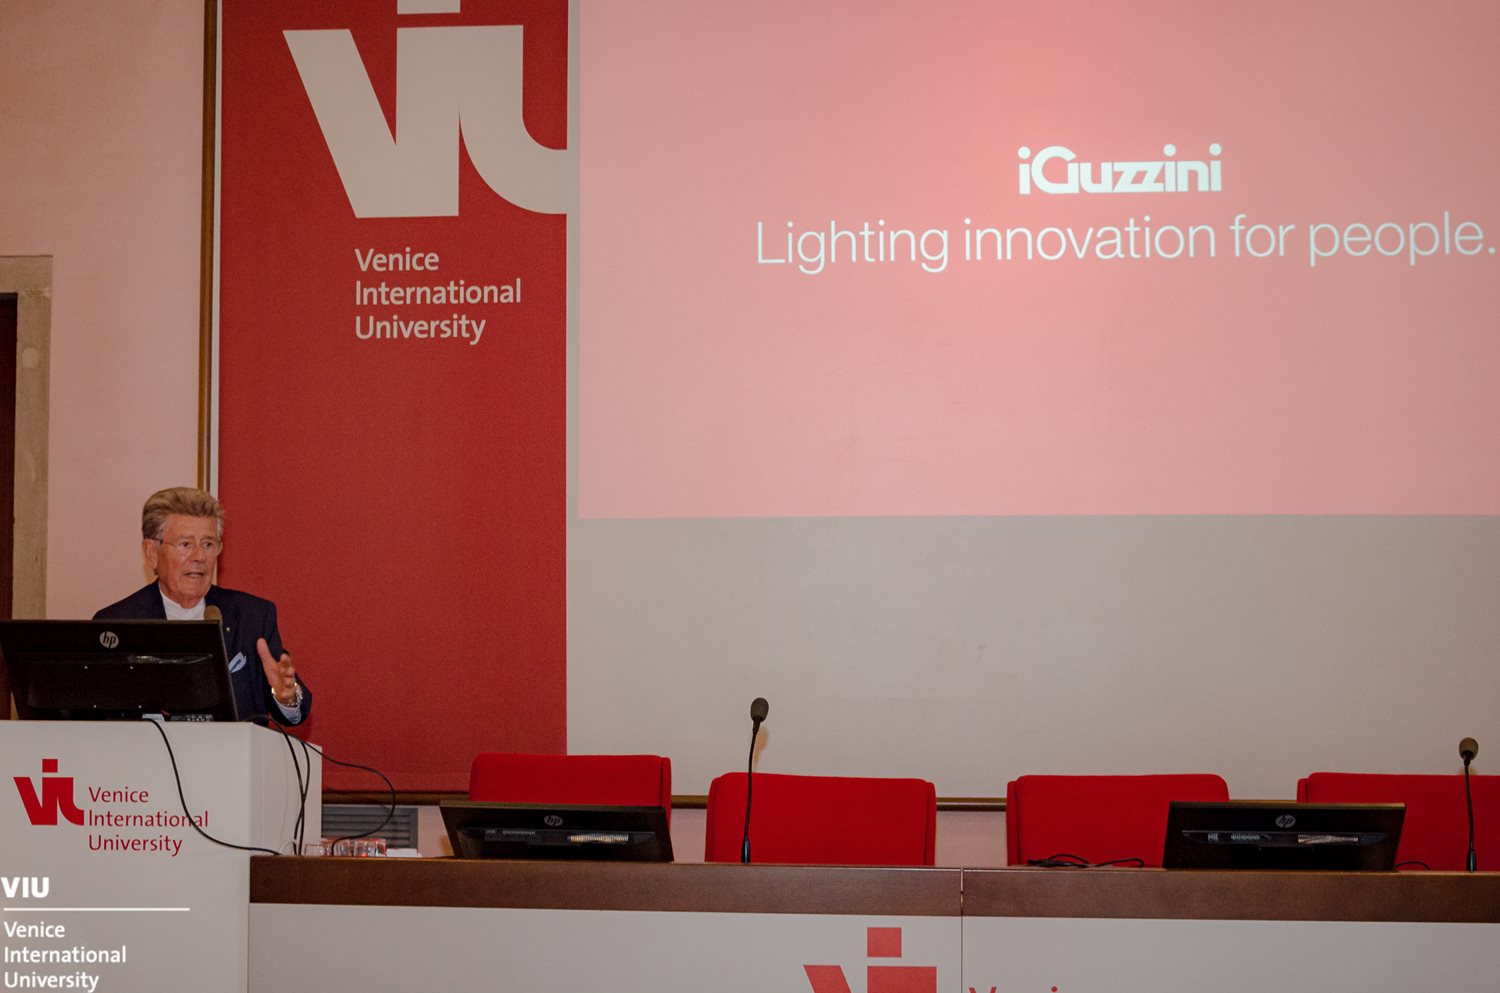 Adolfo Guzzini opens the academic year at the Venice International University